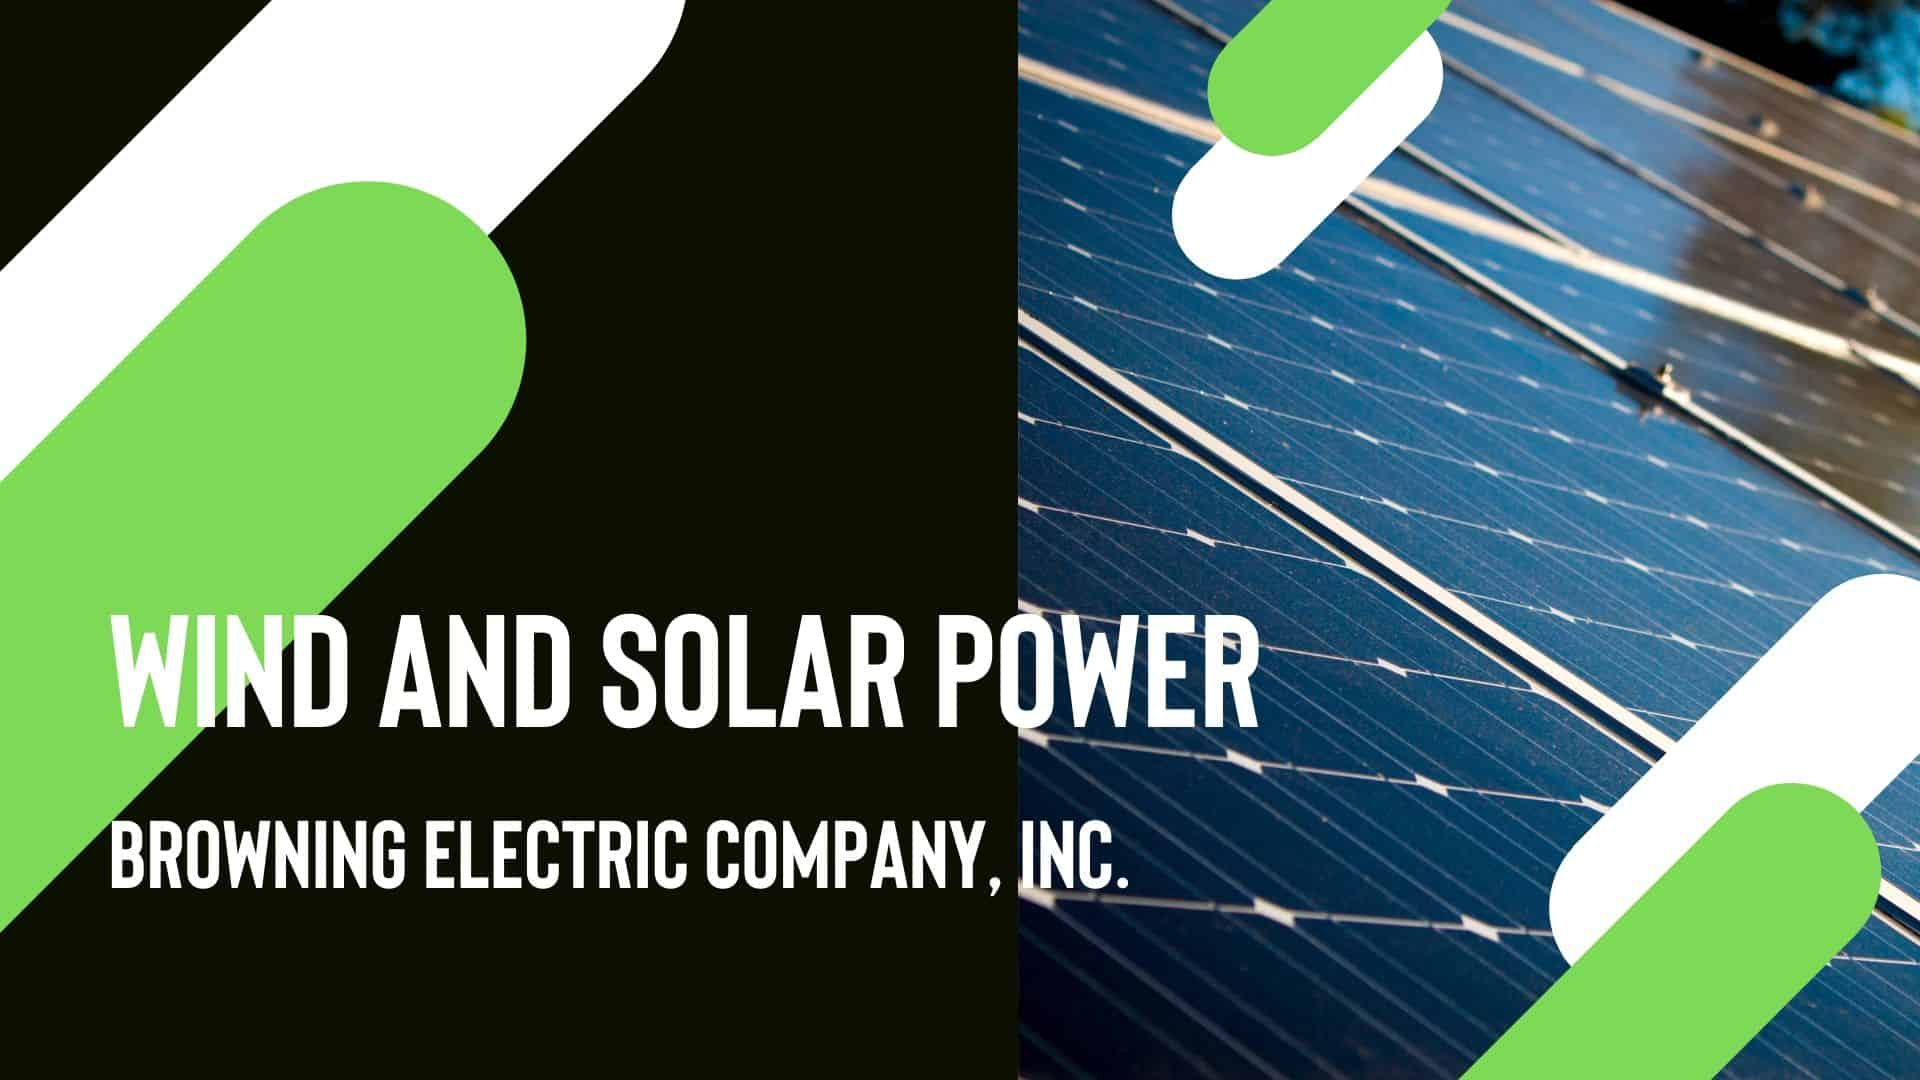 wind and solar power browning electric company inc. web page design